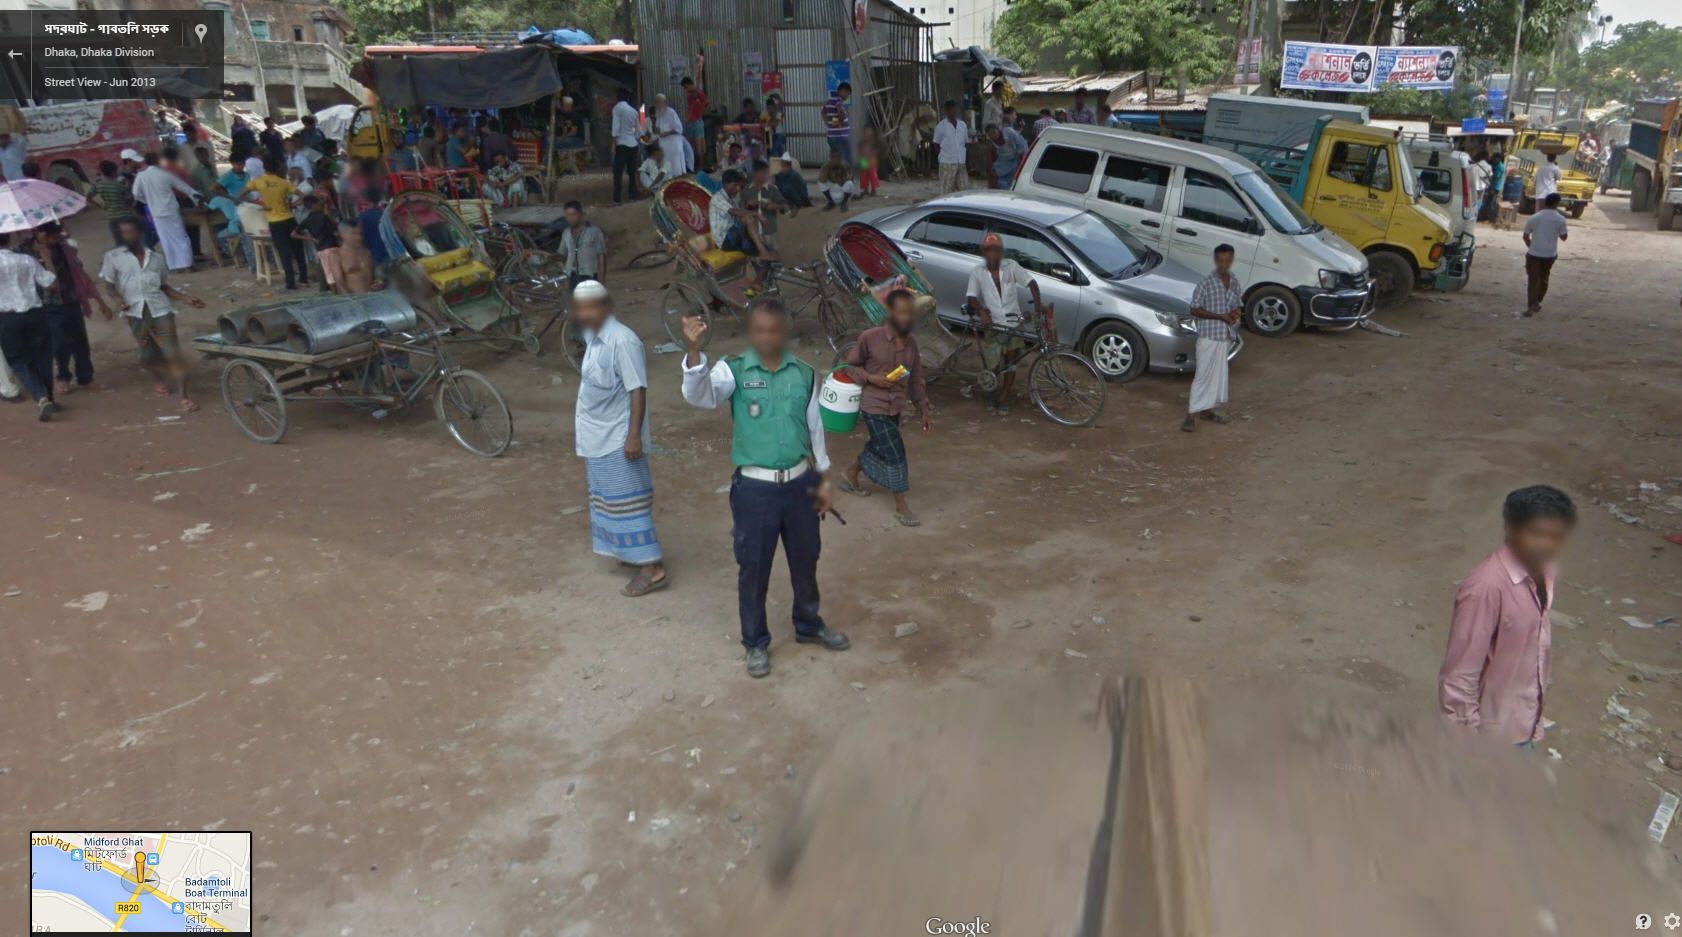 Google Street View Bangladesh Now Live Street View Maps Street